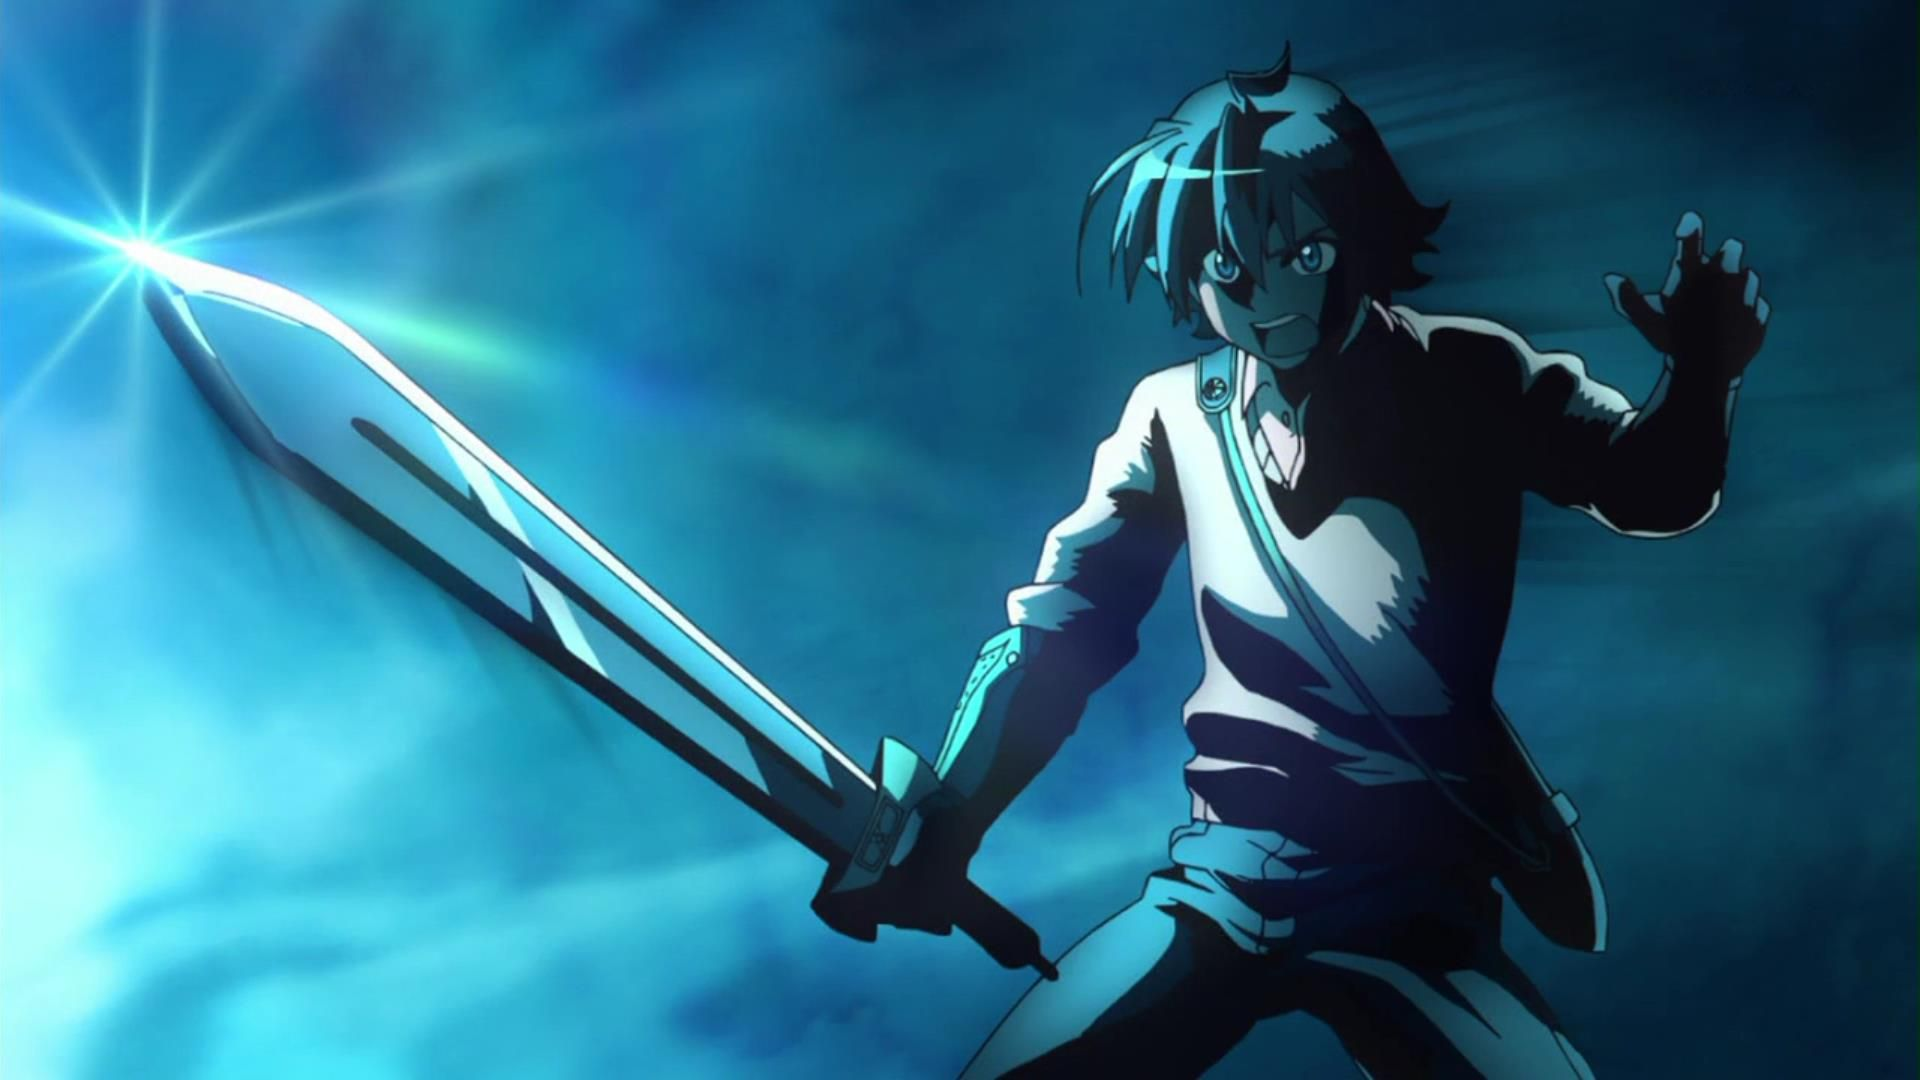 Akame Ga Kill Tatsumi Hd Wallpaper Imagens Hd Personagens De Anime